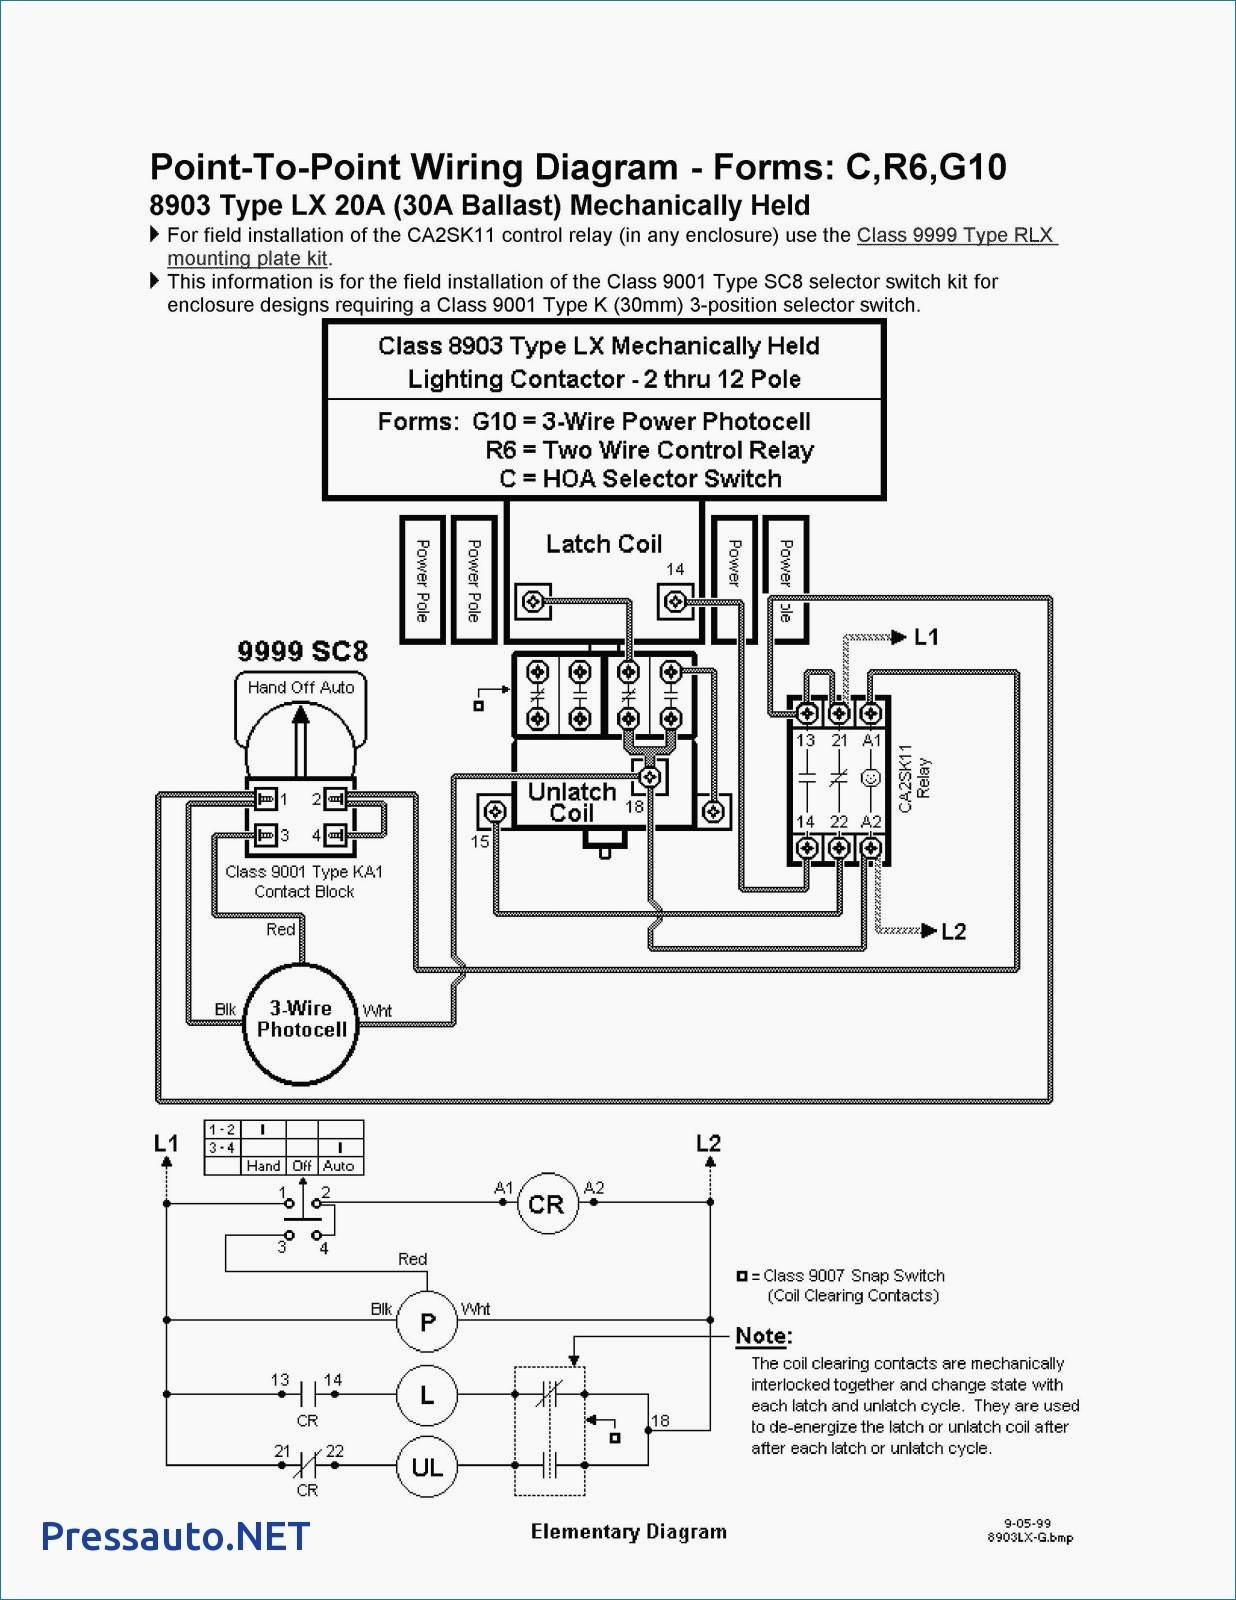 asco 917 wiring diagram Collection-Asco 917 Wiring Diagrams Wire Center 19-g